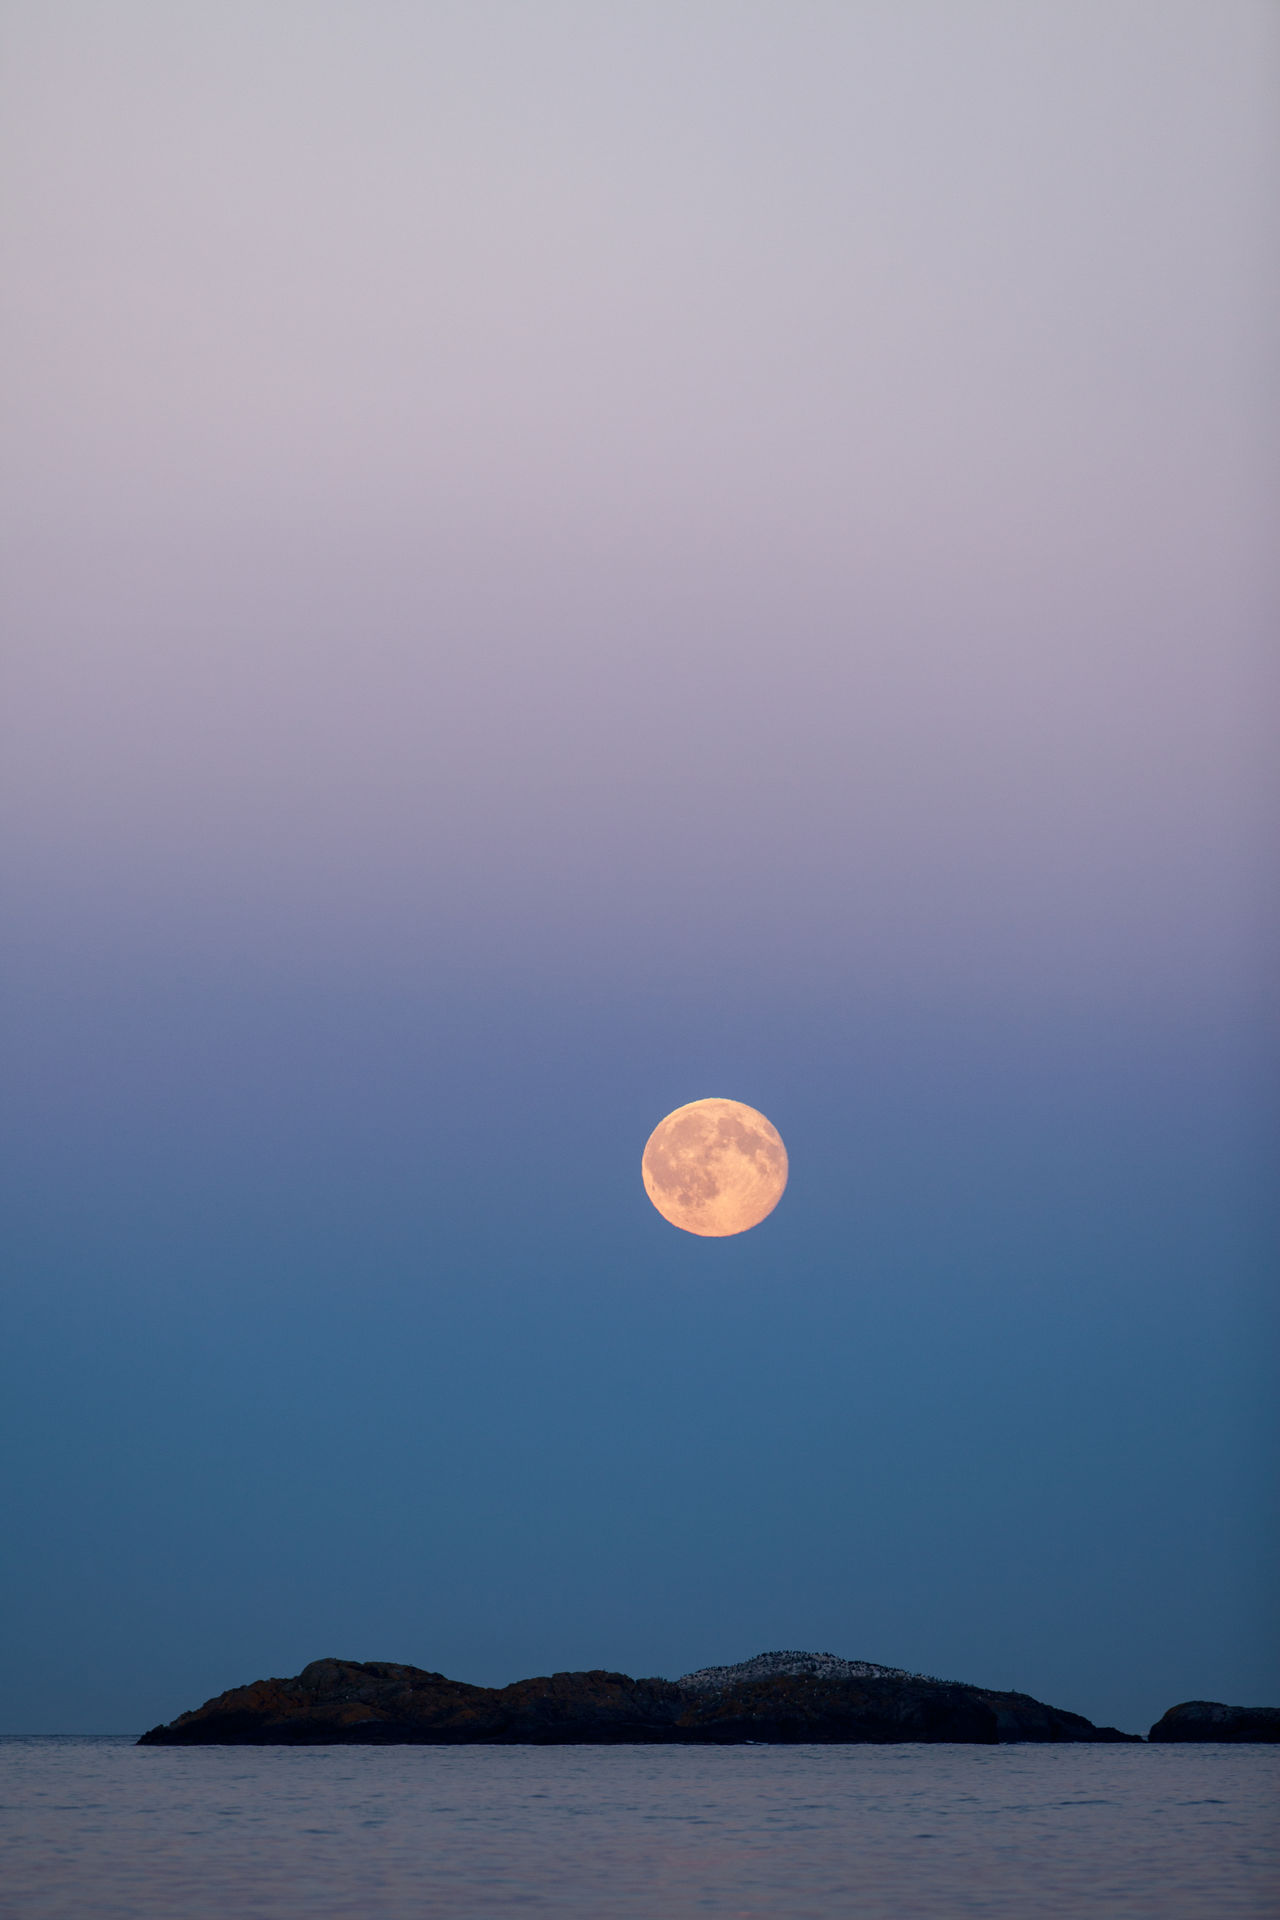 Moon Beauty In Nature Horizon Over Water Moon No People Norway Sea Seascape Sky Tranquility Vertical Water Blue Wave The Great Outdoors With Adobe The Great Outdoors - 2016 EyeEm Awards